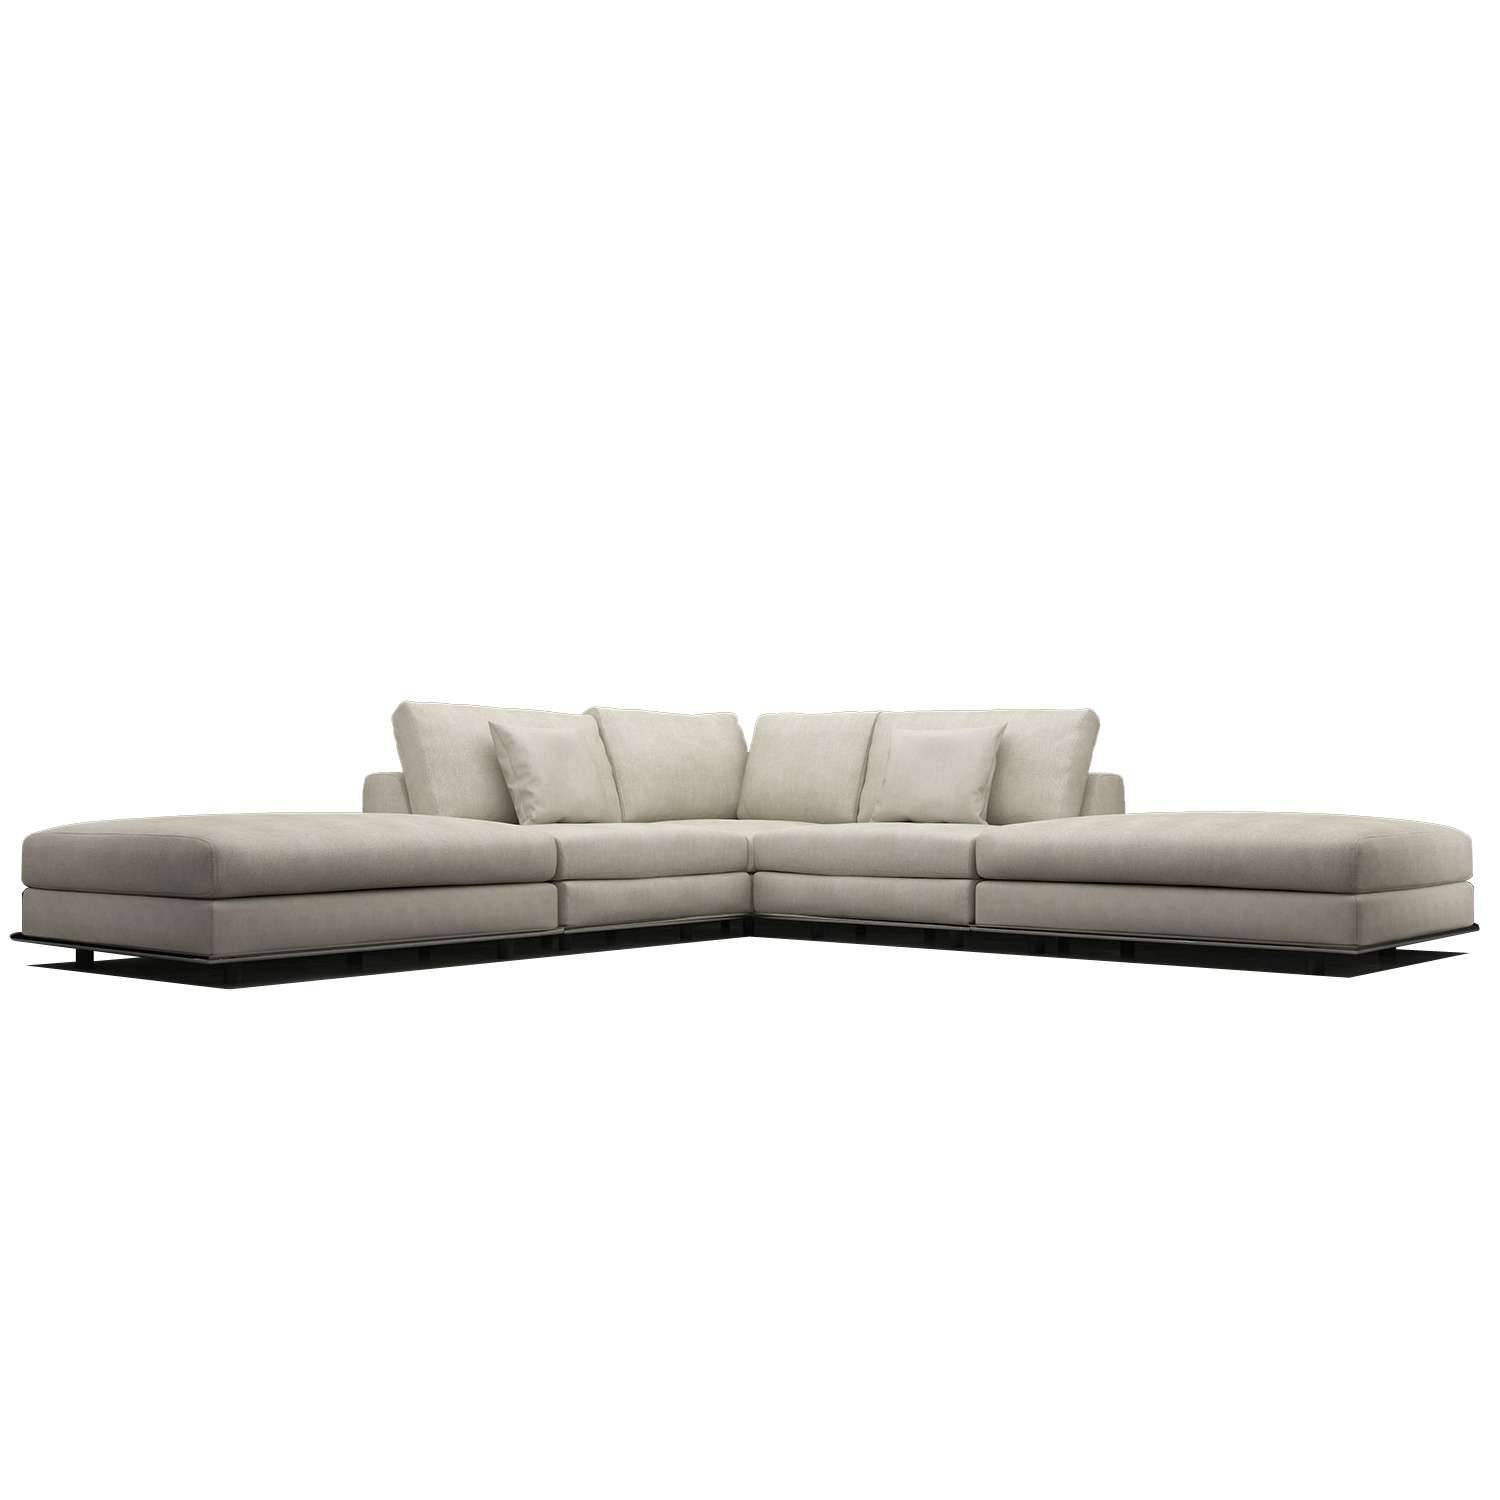 Perry Armless Corner Sofamodloft | Yliving in Armless Sectional Sofa (Image 21 of 30)